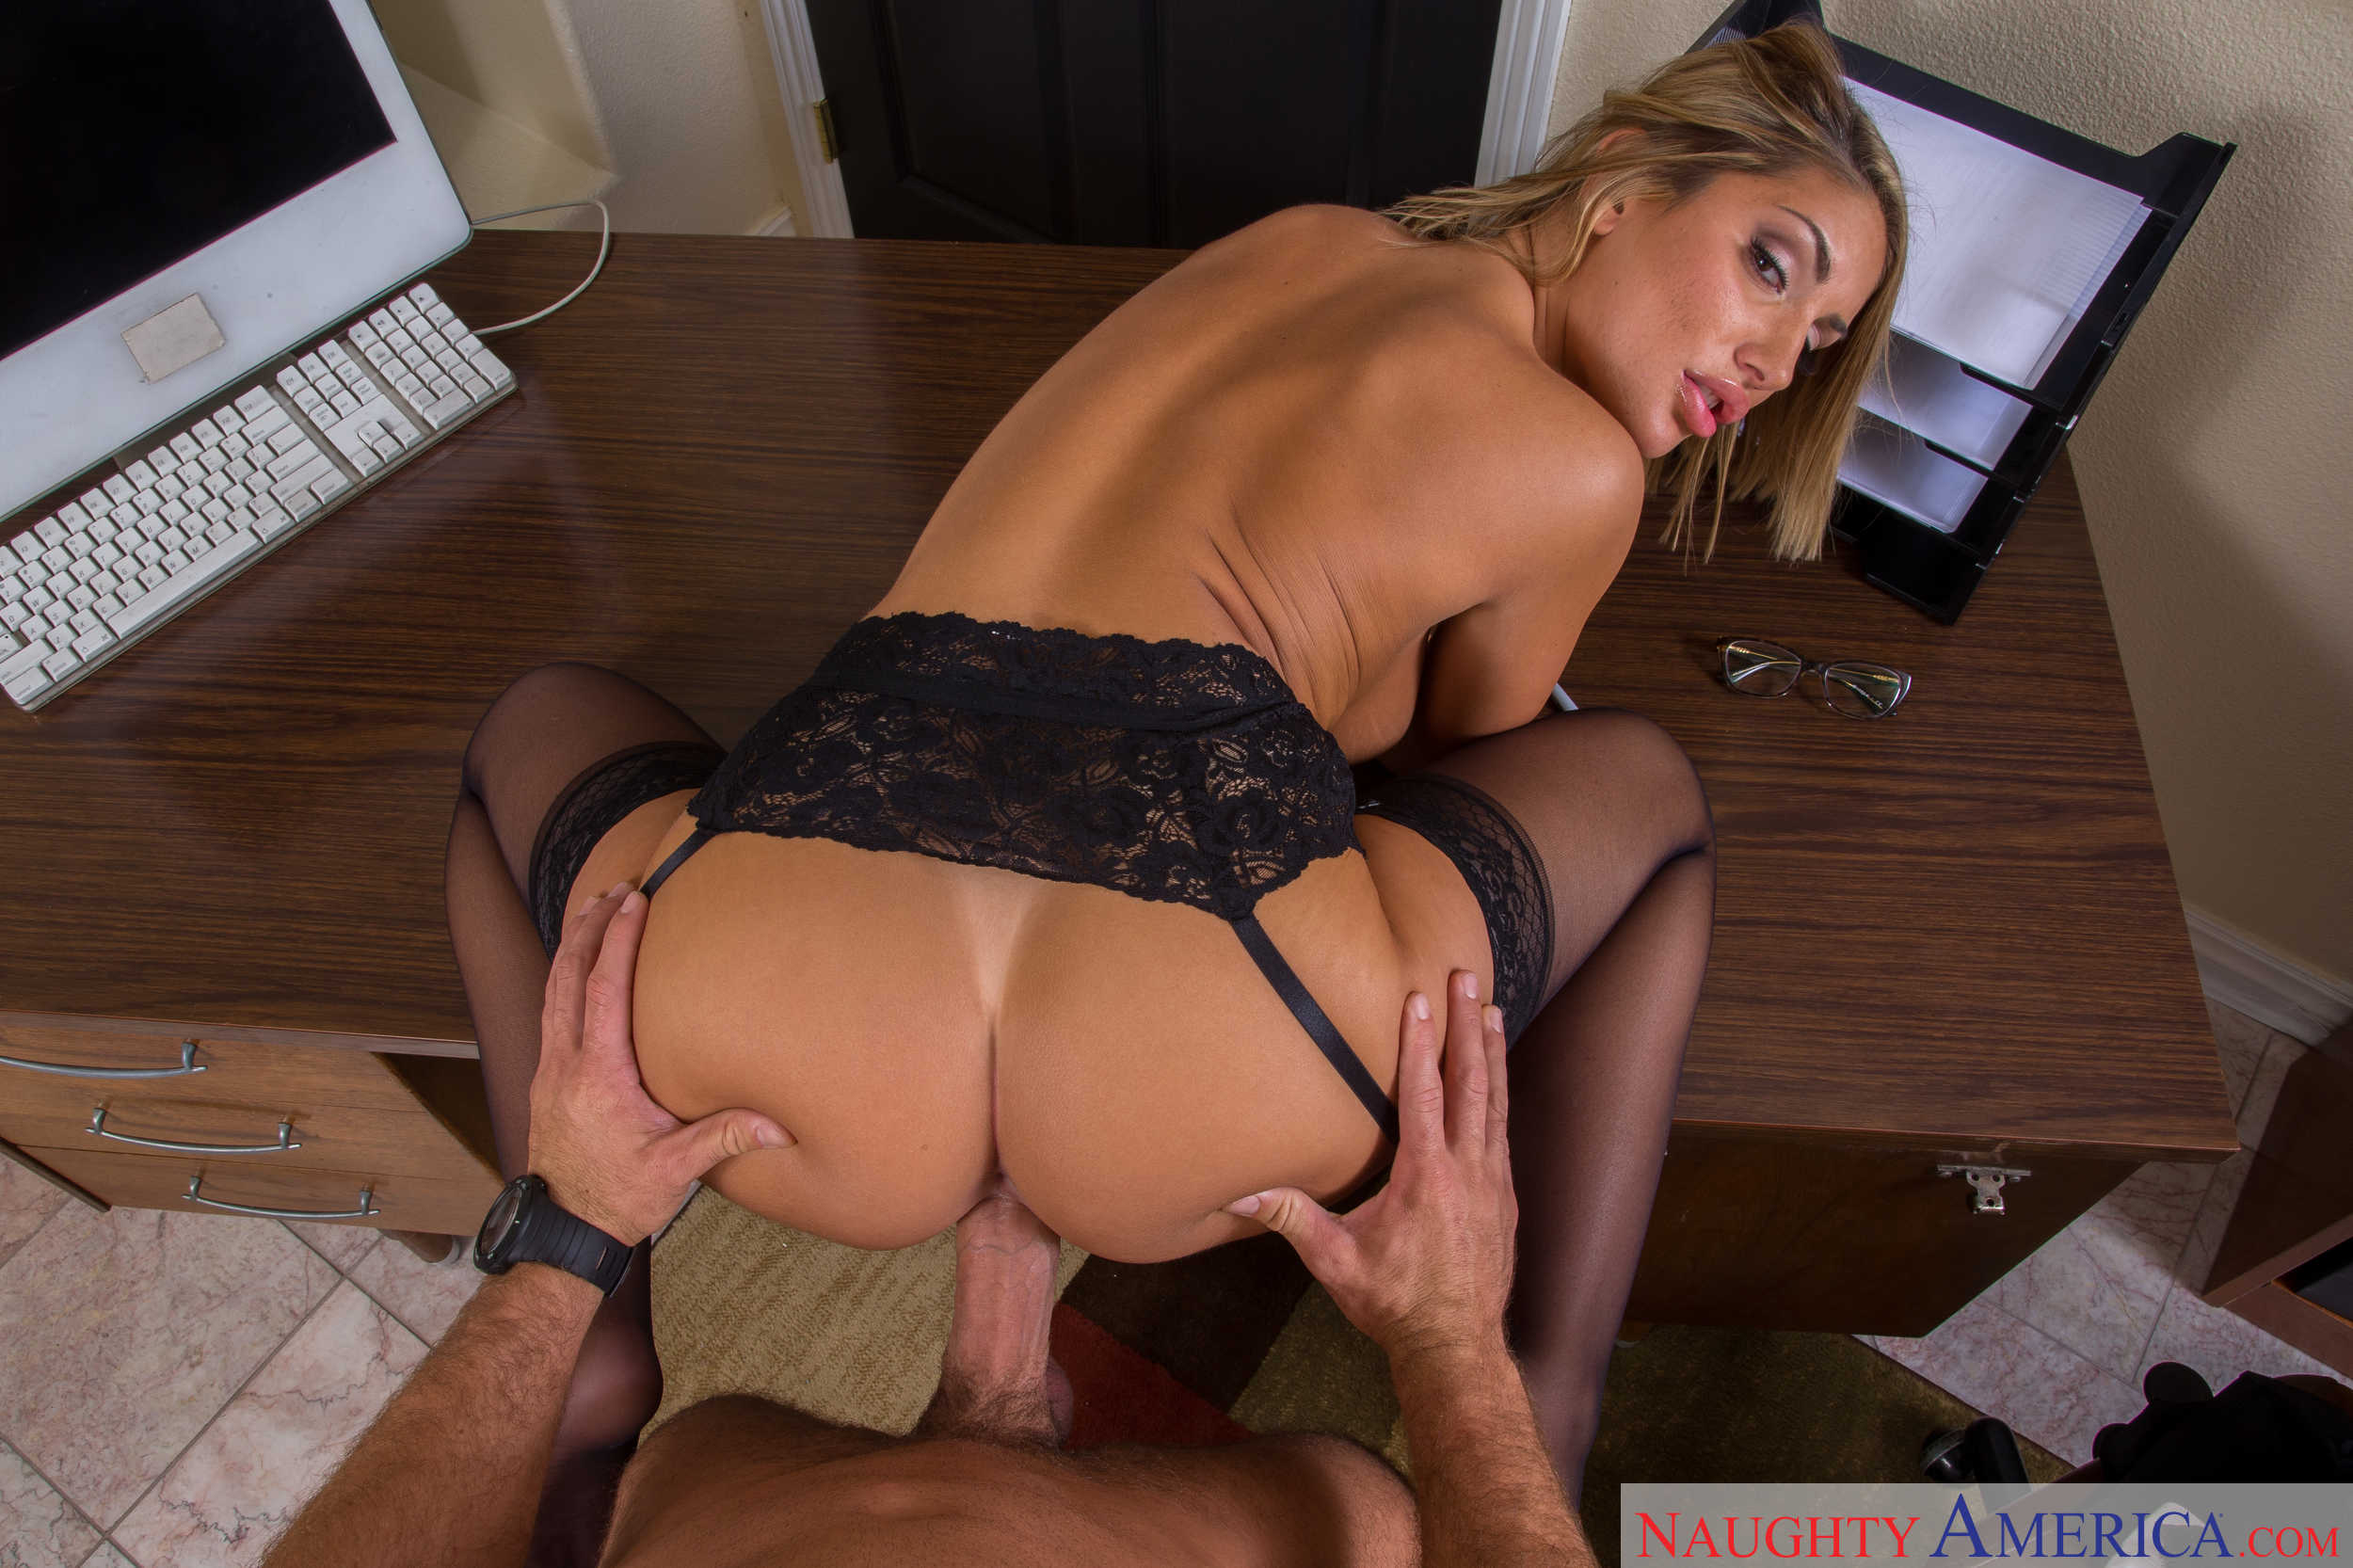 August Ames Sexual Healing